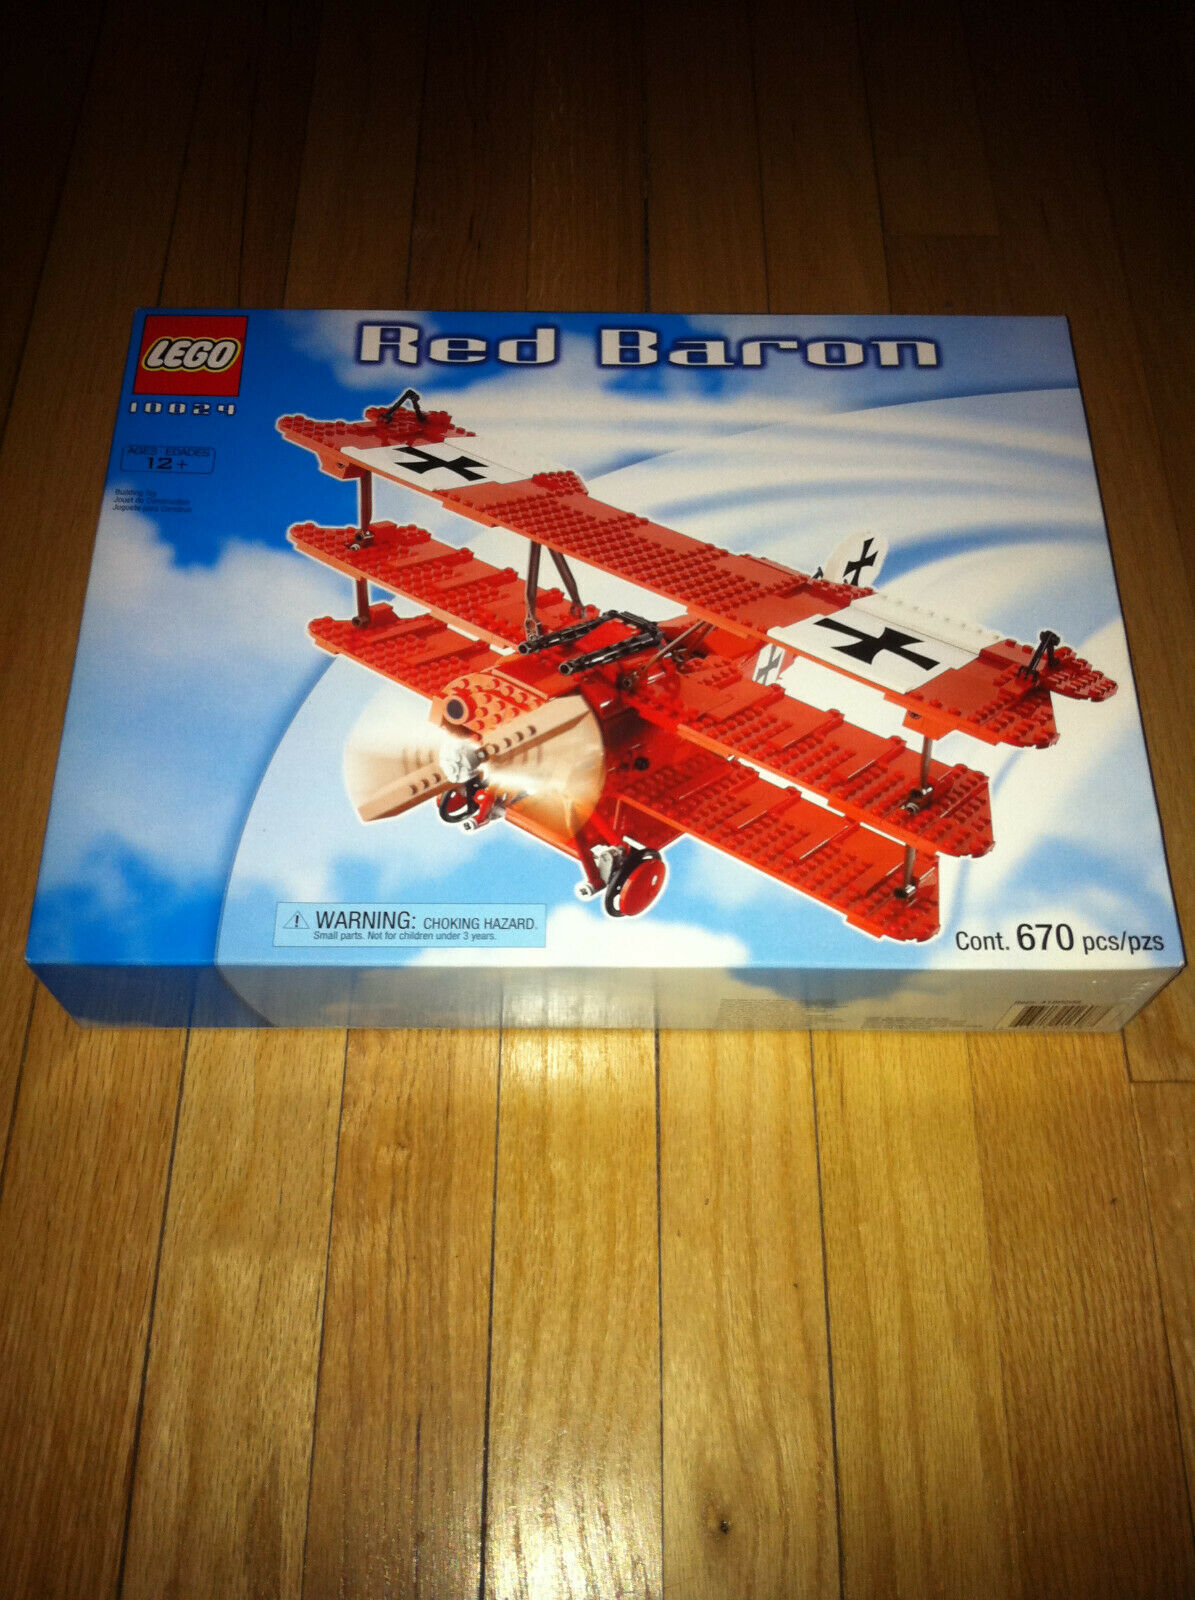 2001 Lego rot Baron  10024 NEVER OPENED - CLEANEST ONE YOU WILL FIND